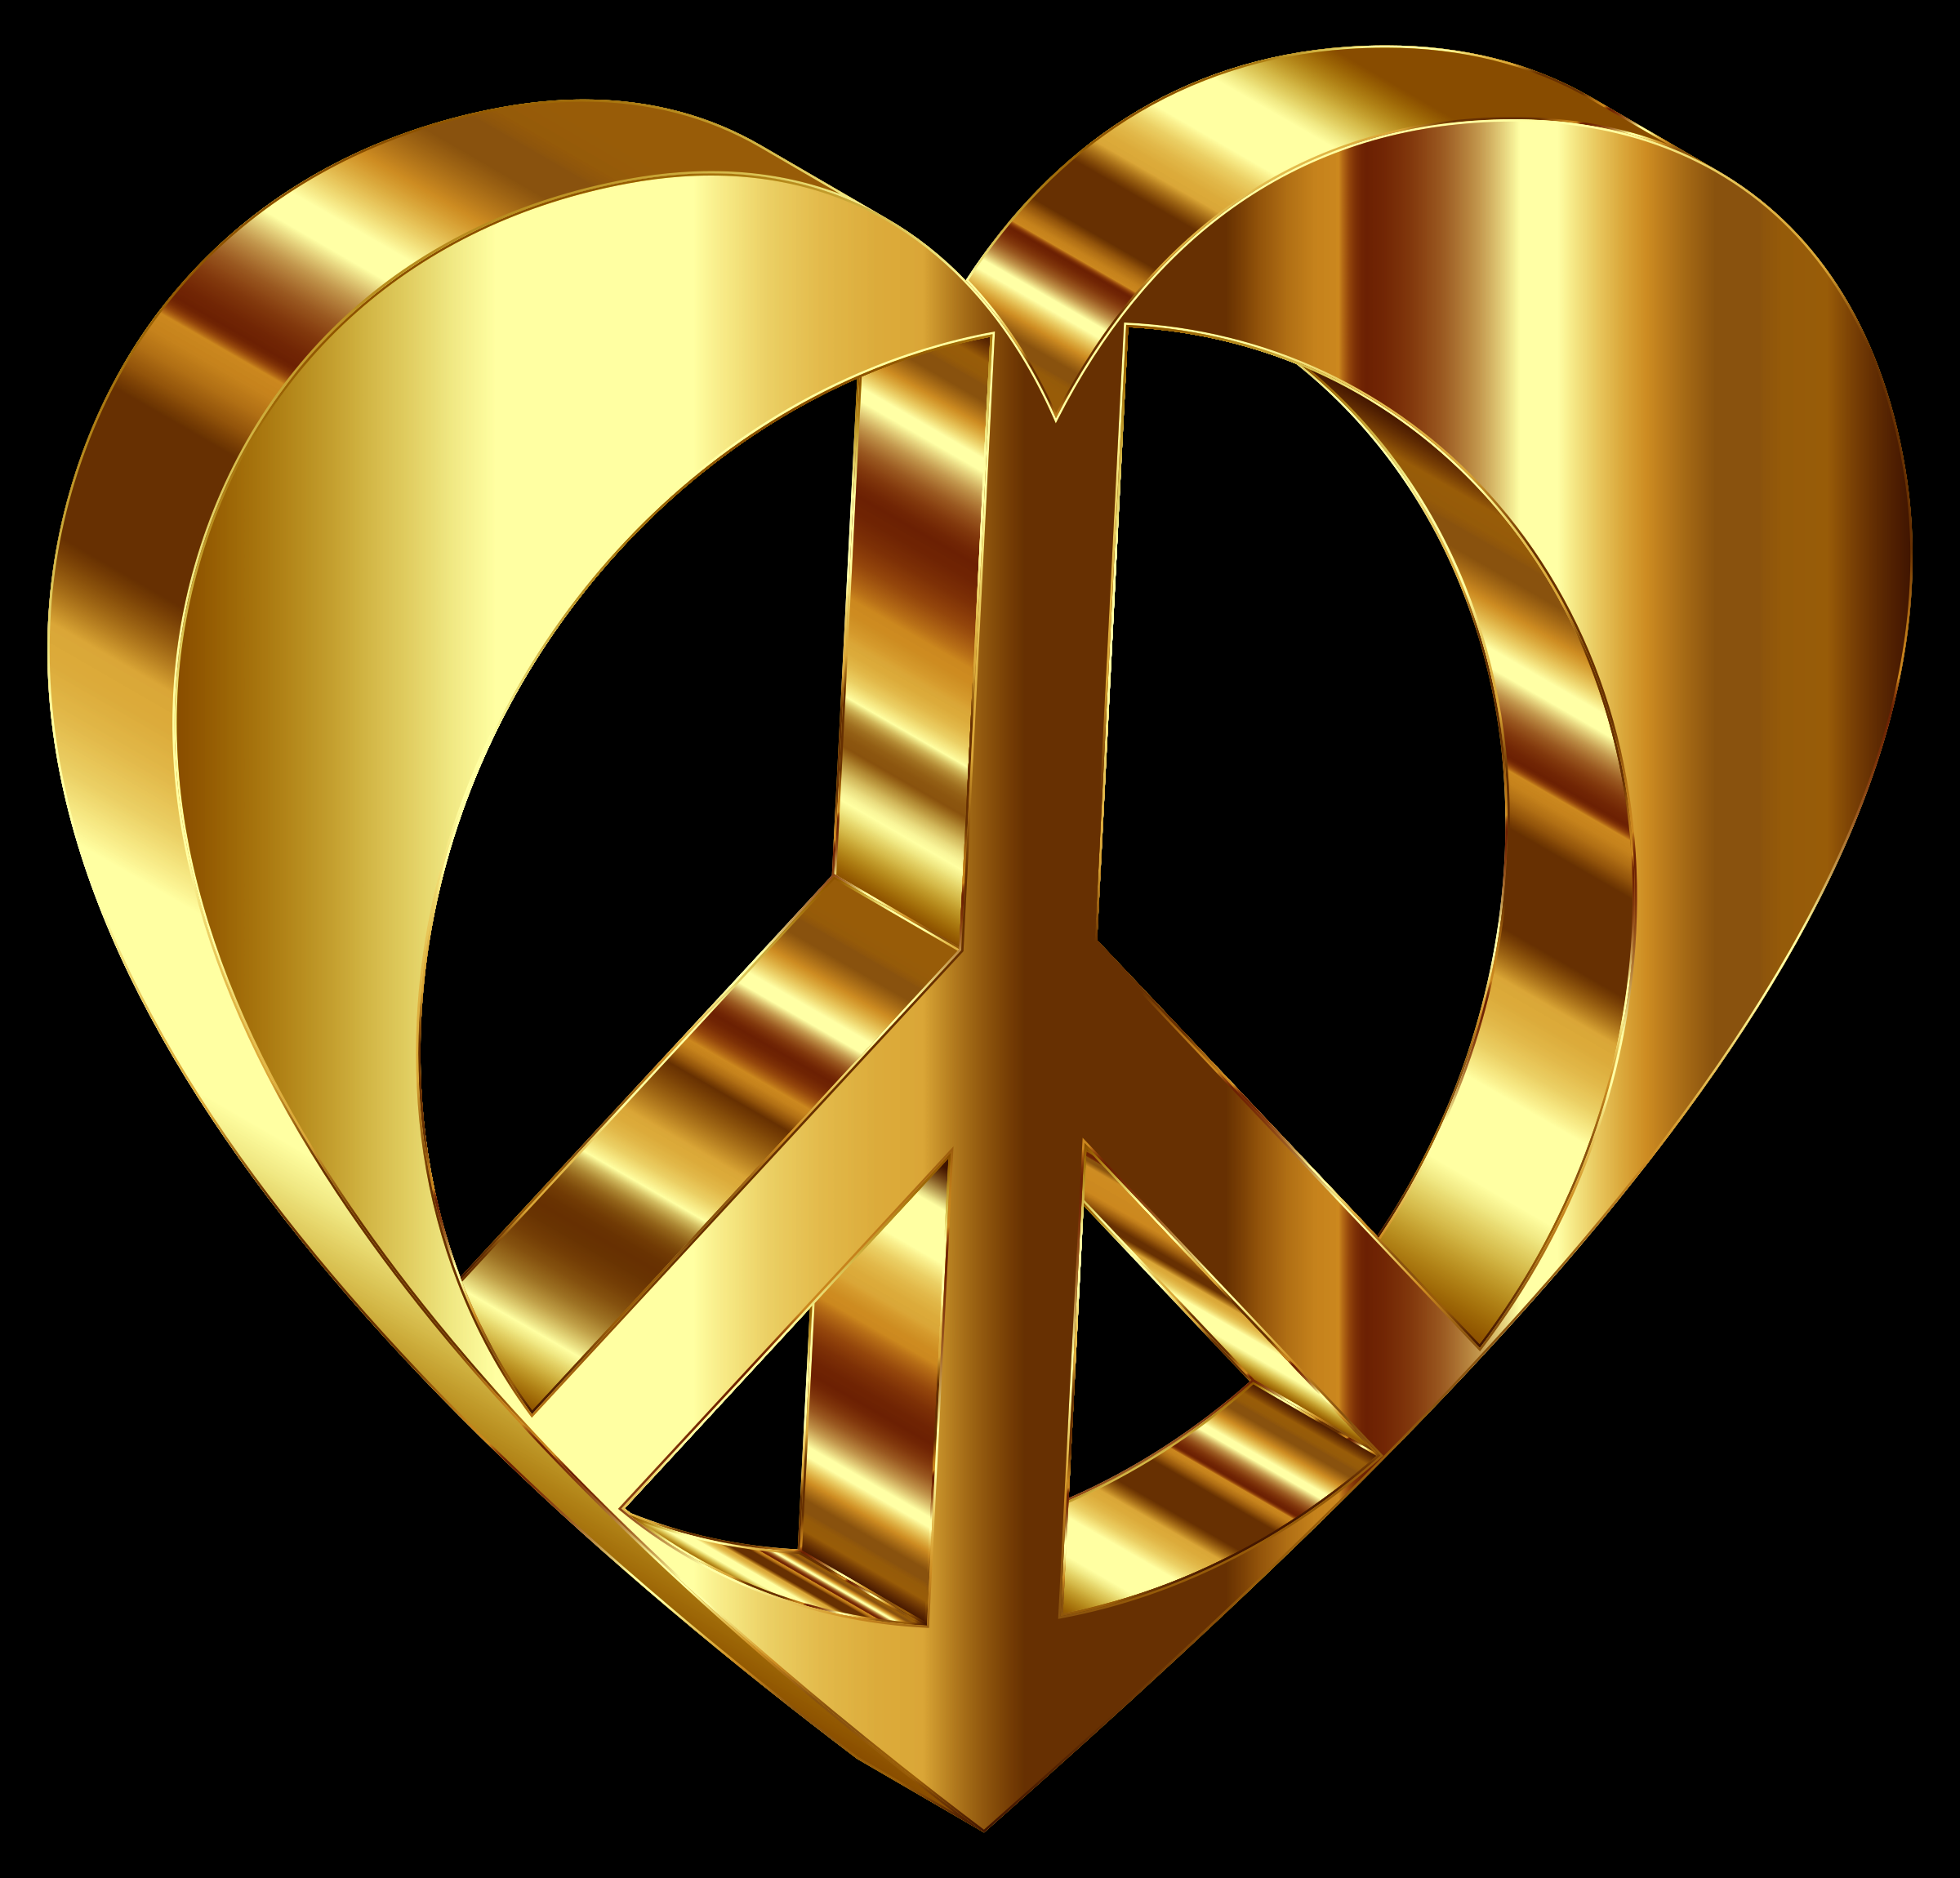 3D Peace Heart Mark II Gold Variation 2 Enhanced Contrast With Background by GDJ